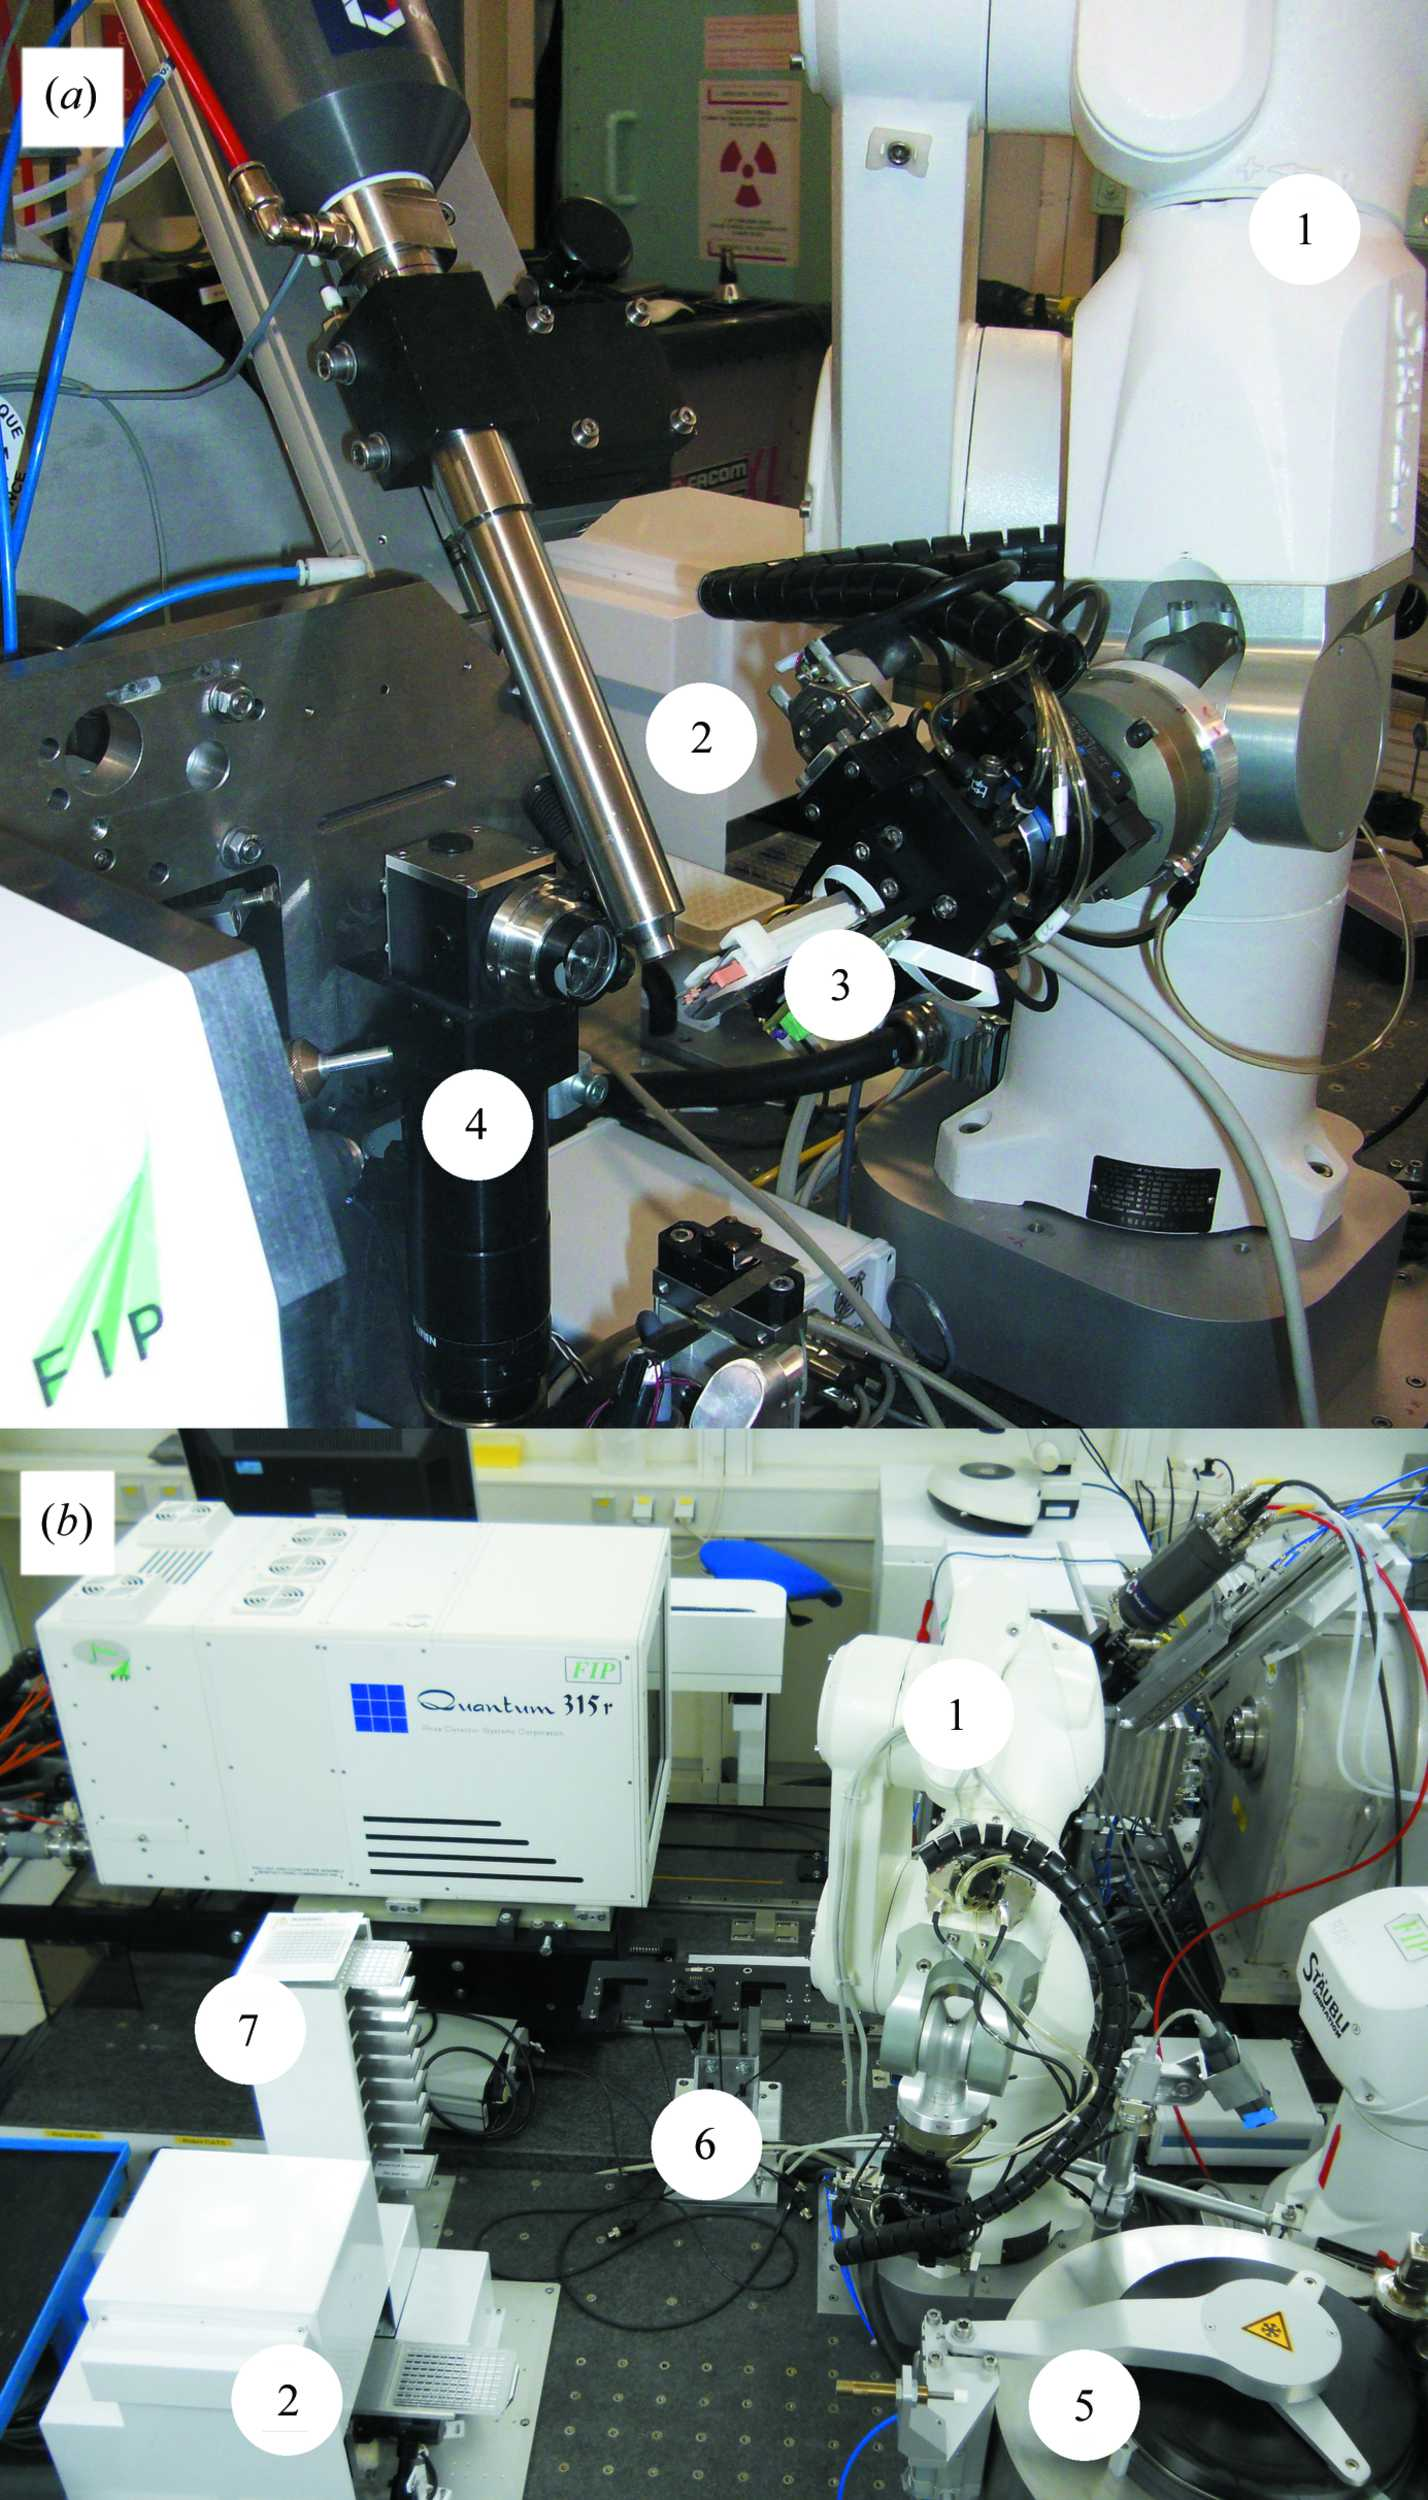 Iucr Reach Robotic Equipment For Automated Crystal Harvesting Wiring Tools Ppt Disable Zoom View Article Download